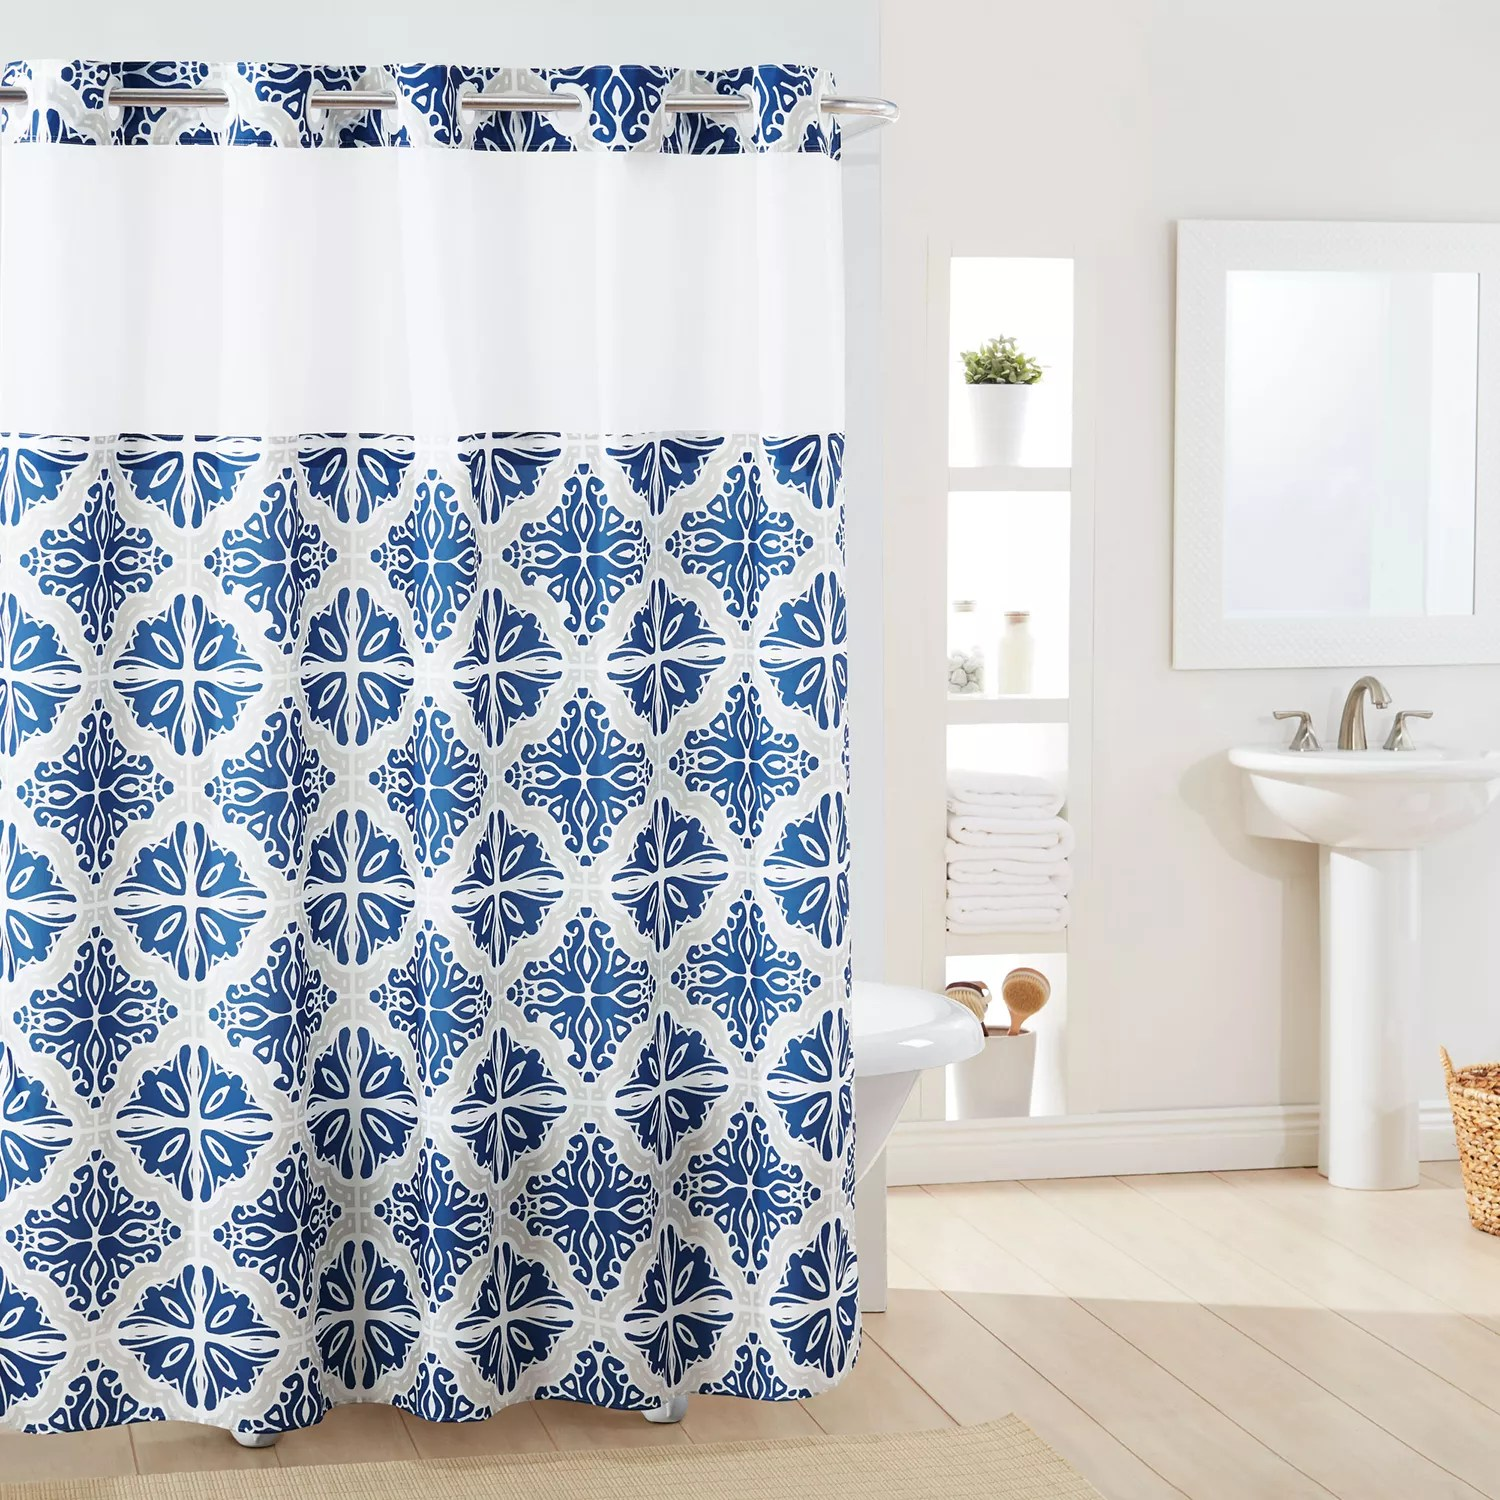 hookless shower curtains shop for